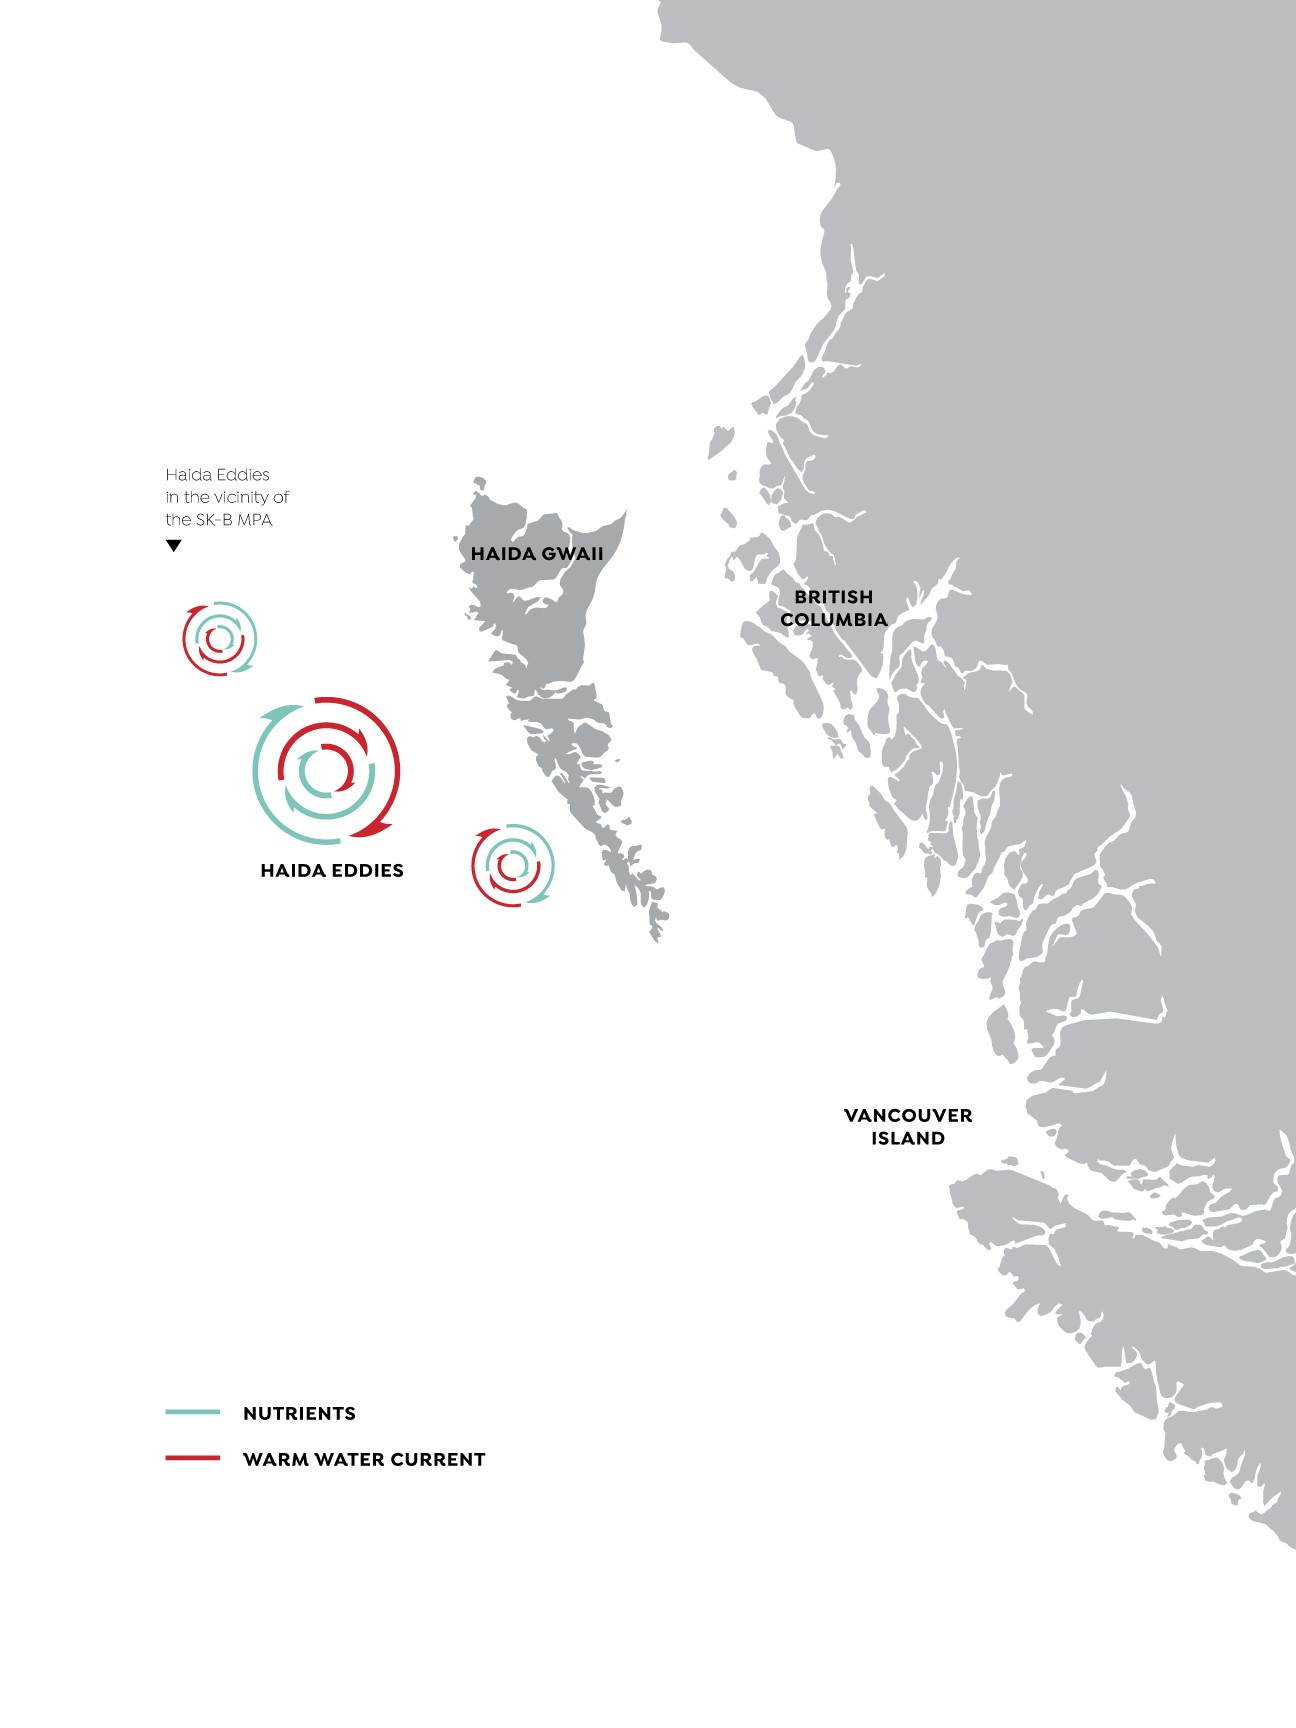 Figure 2. Haida Eddies in the vicinity of the SK-B MPA.